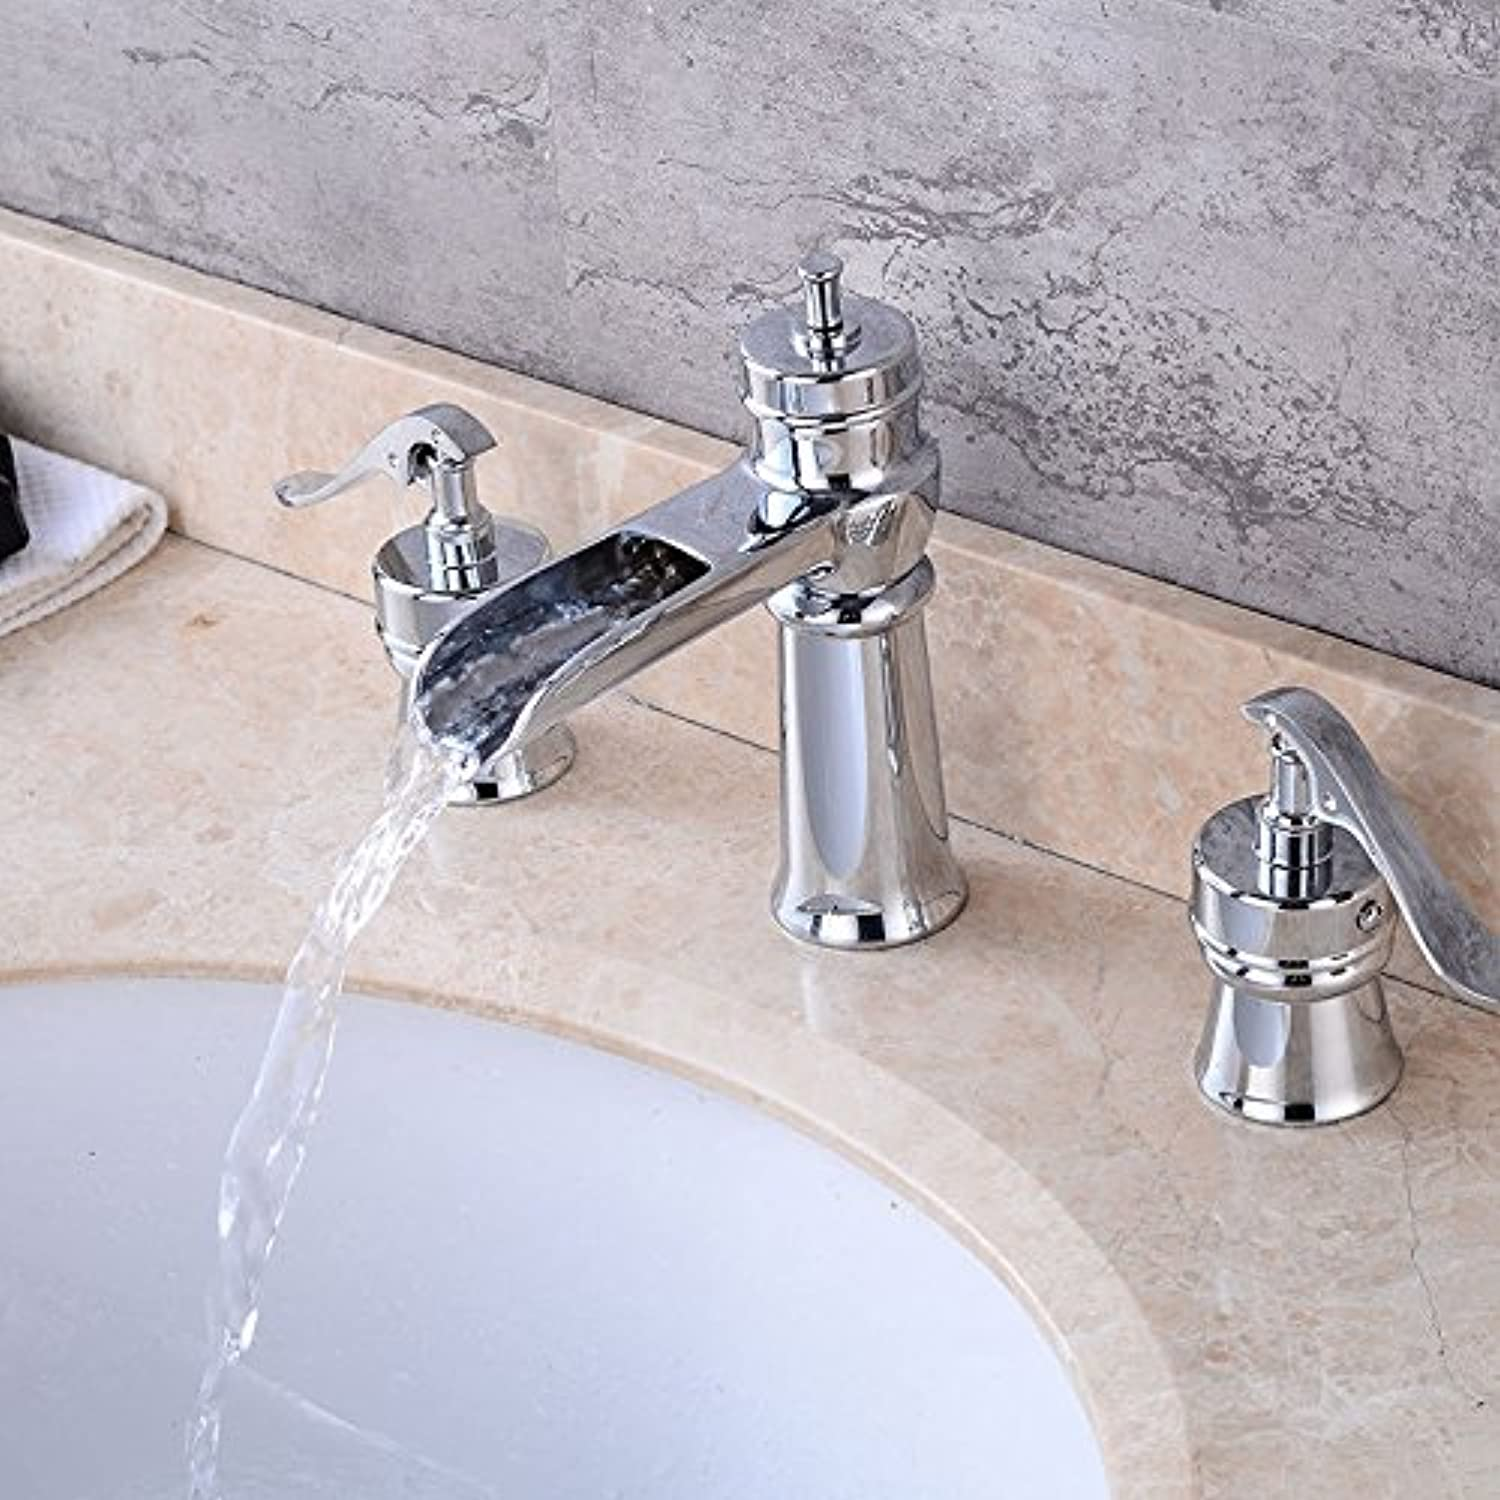 Hlluya Professional Sink Mixer Tap Kitchen Faucet Three Hole basin faucet waterfall wash hand basins, hot and cold water faucets antique